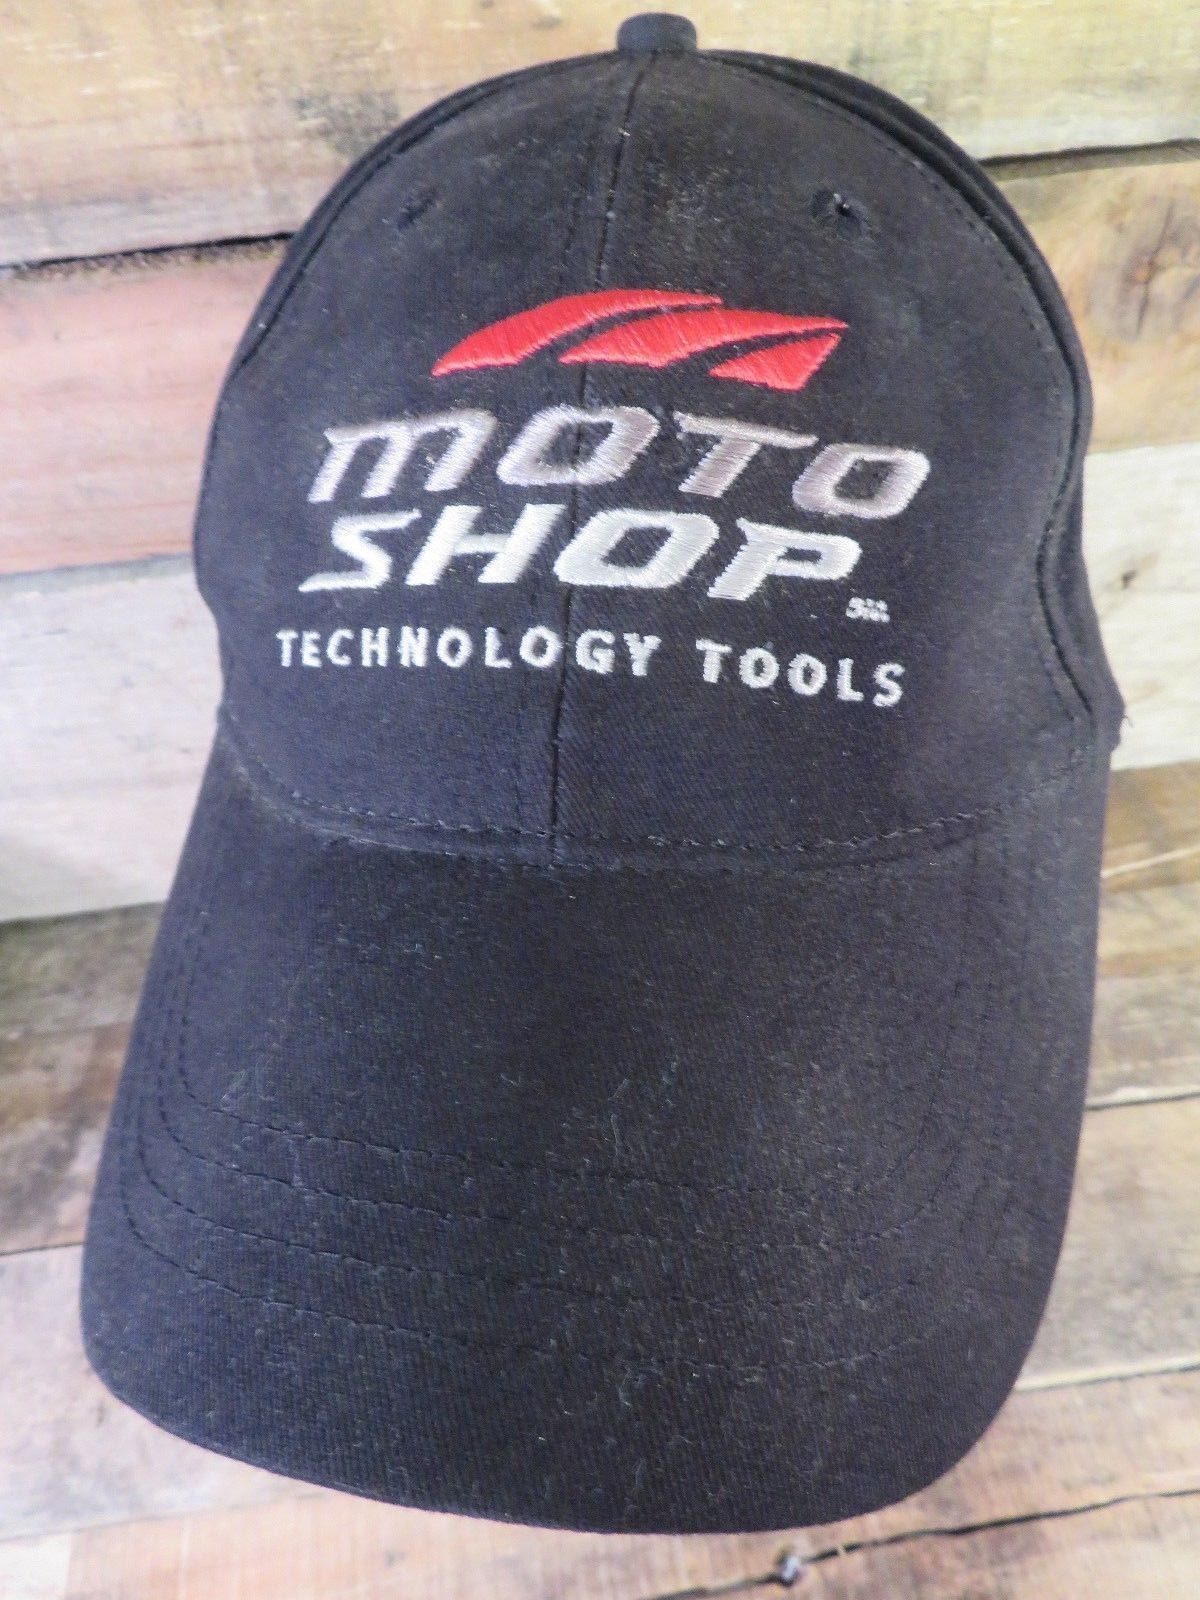 Primary image for MOTOSHOP Technology Tools Automotive Shops Adjustable Adult Hat Cap